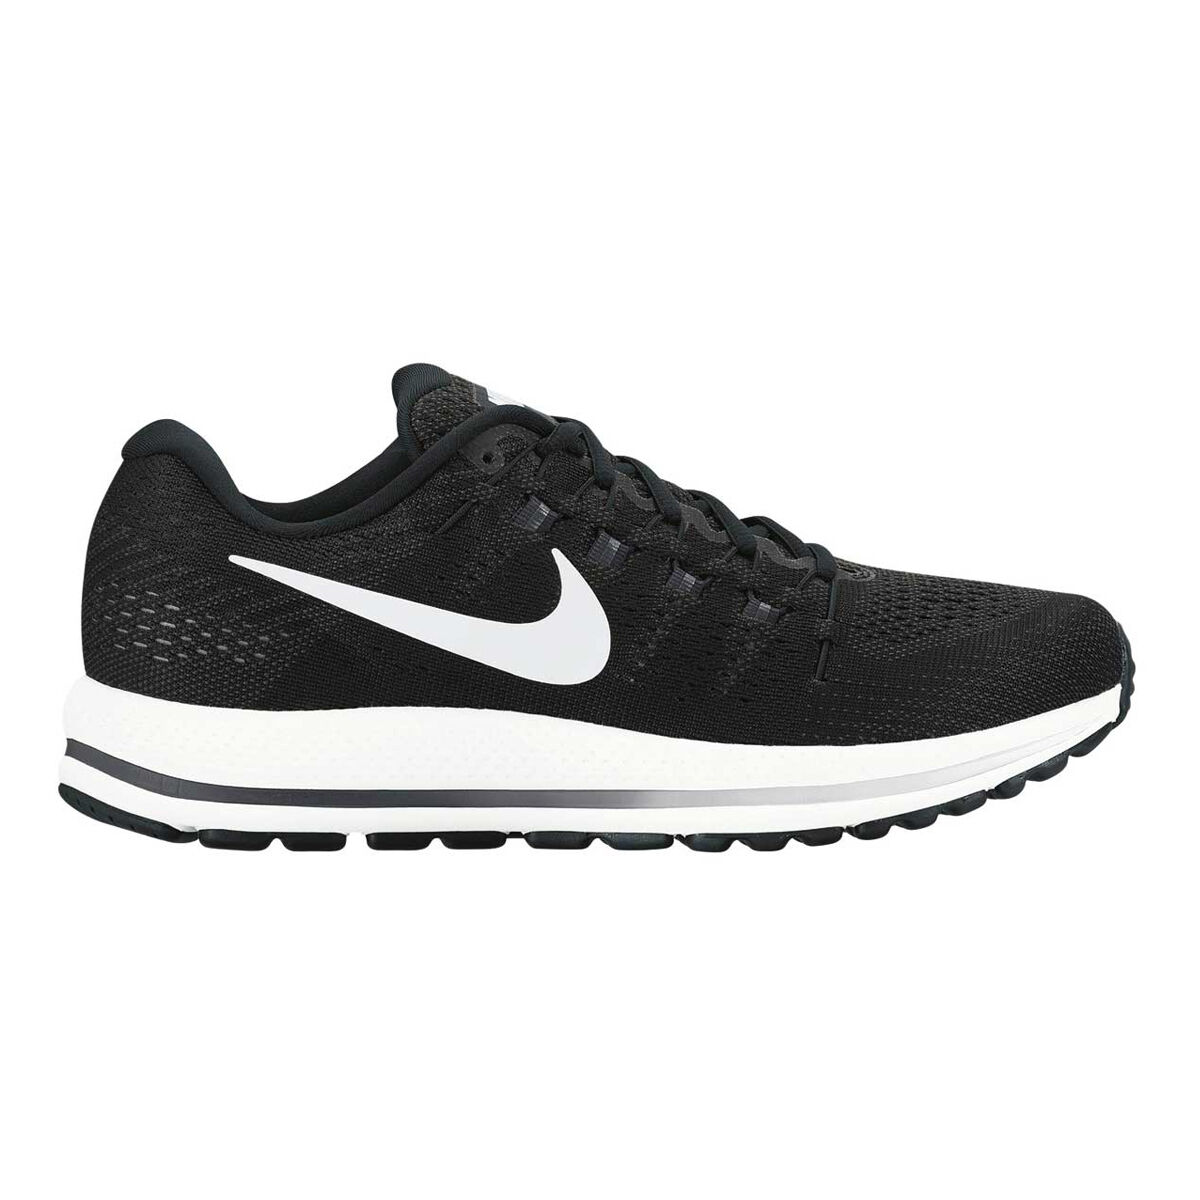 c67ff95b8f6 ... best price nike air zoom vomero 12 mens running shoes black white us 12  black ee6be